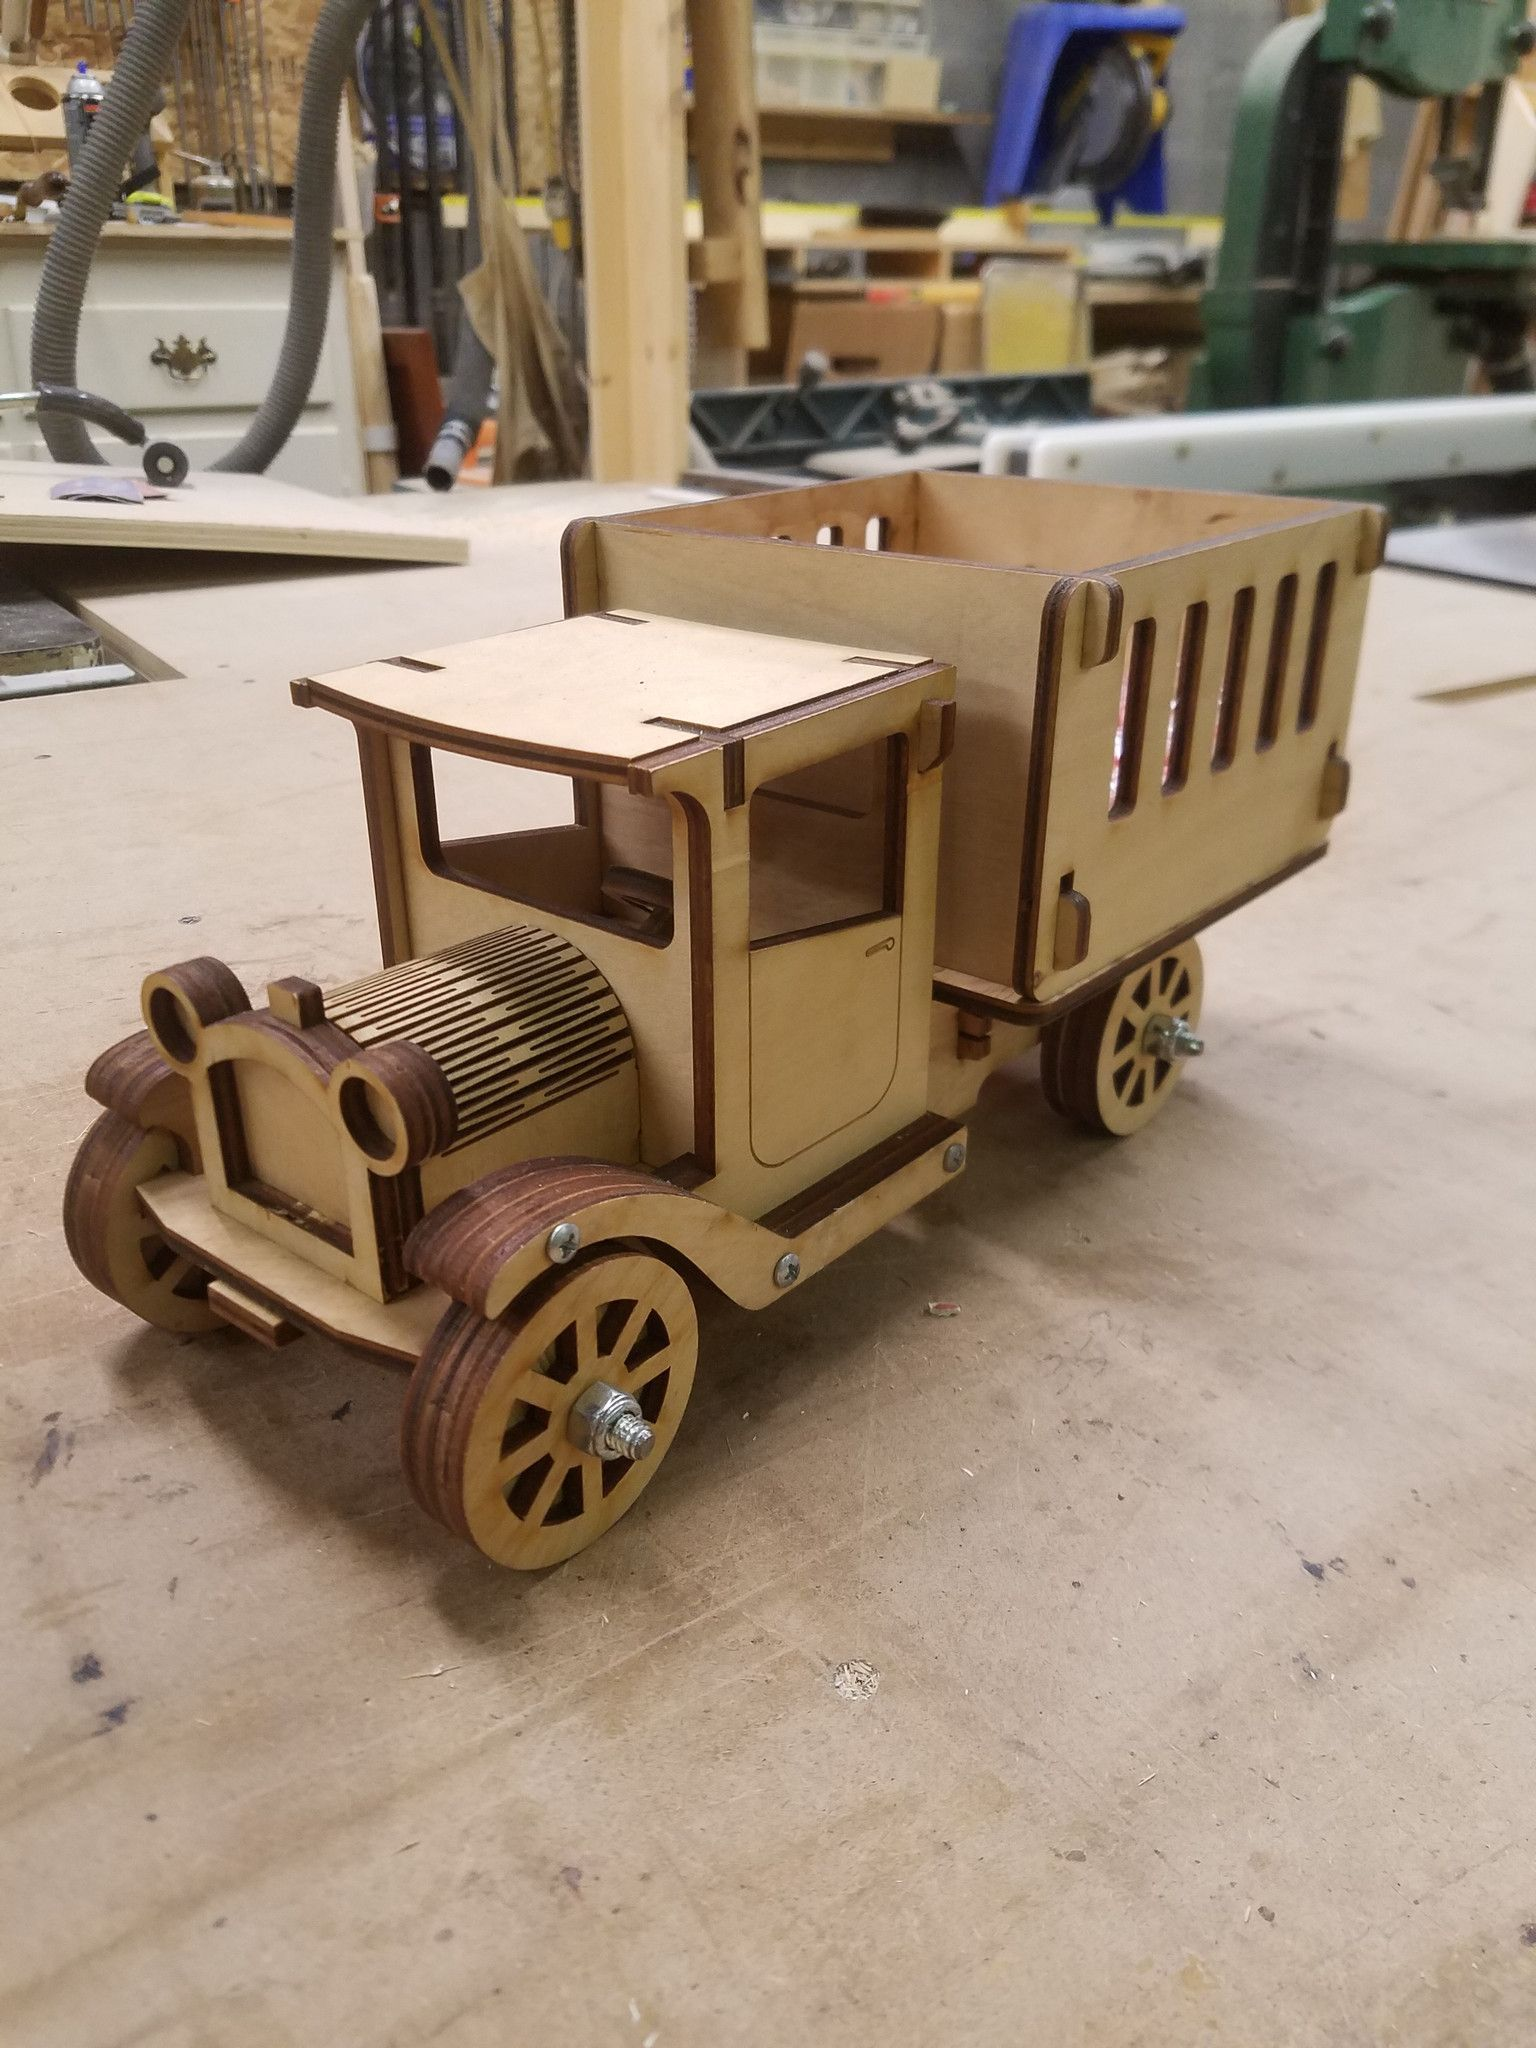 Model C Truck Learn woodworking, Woodworking, Wooden car